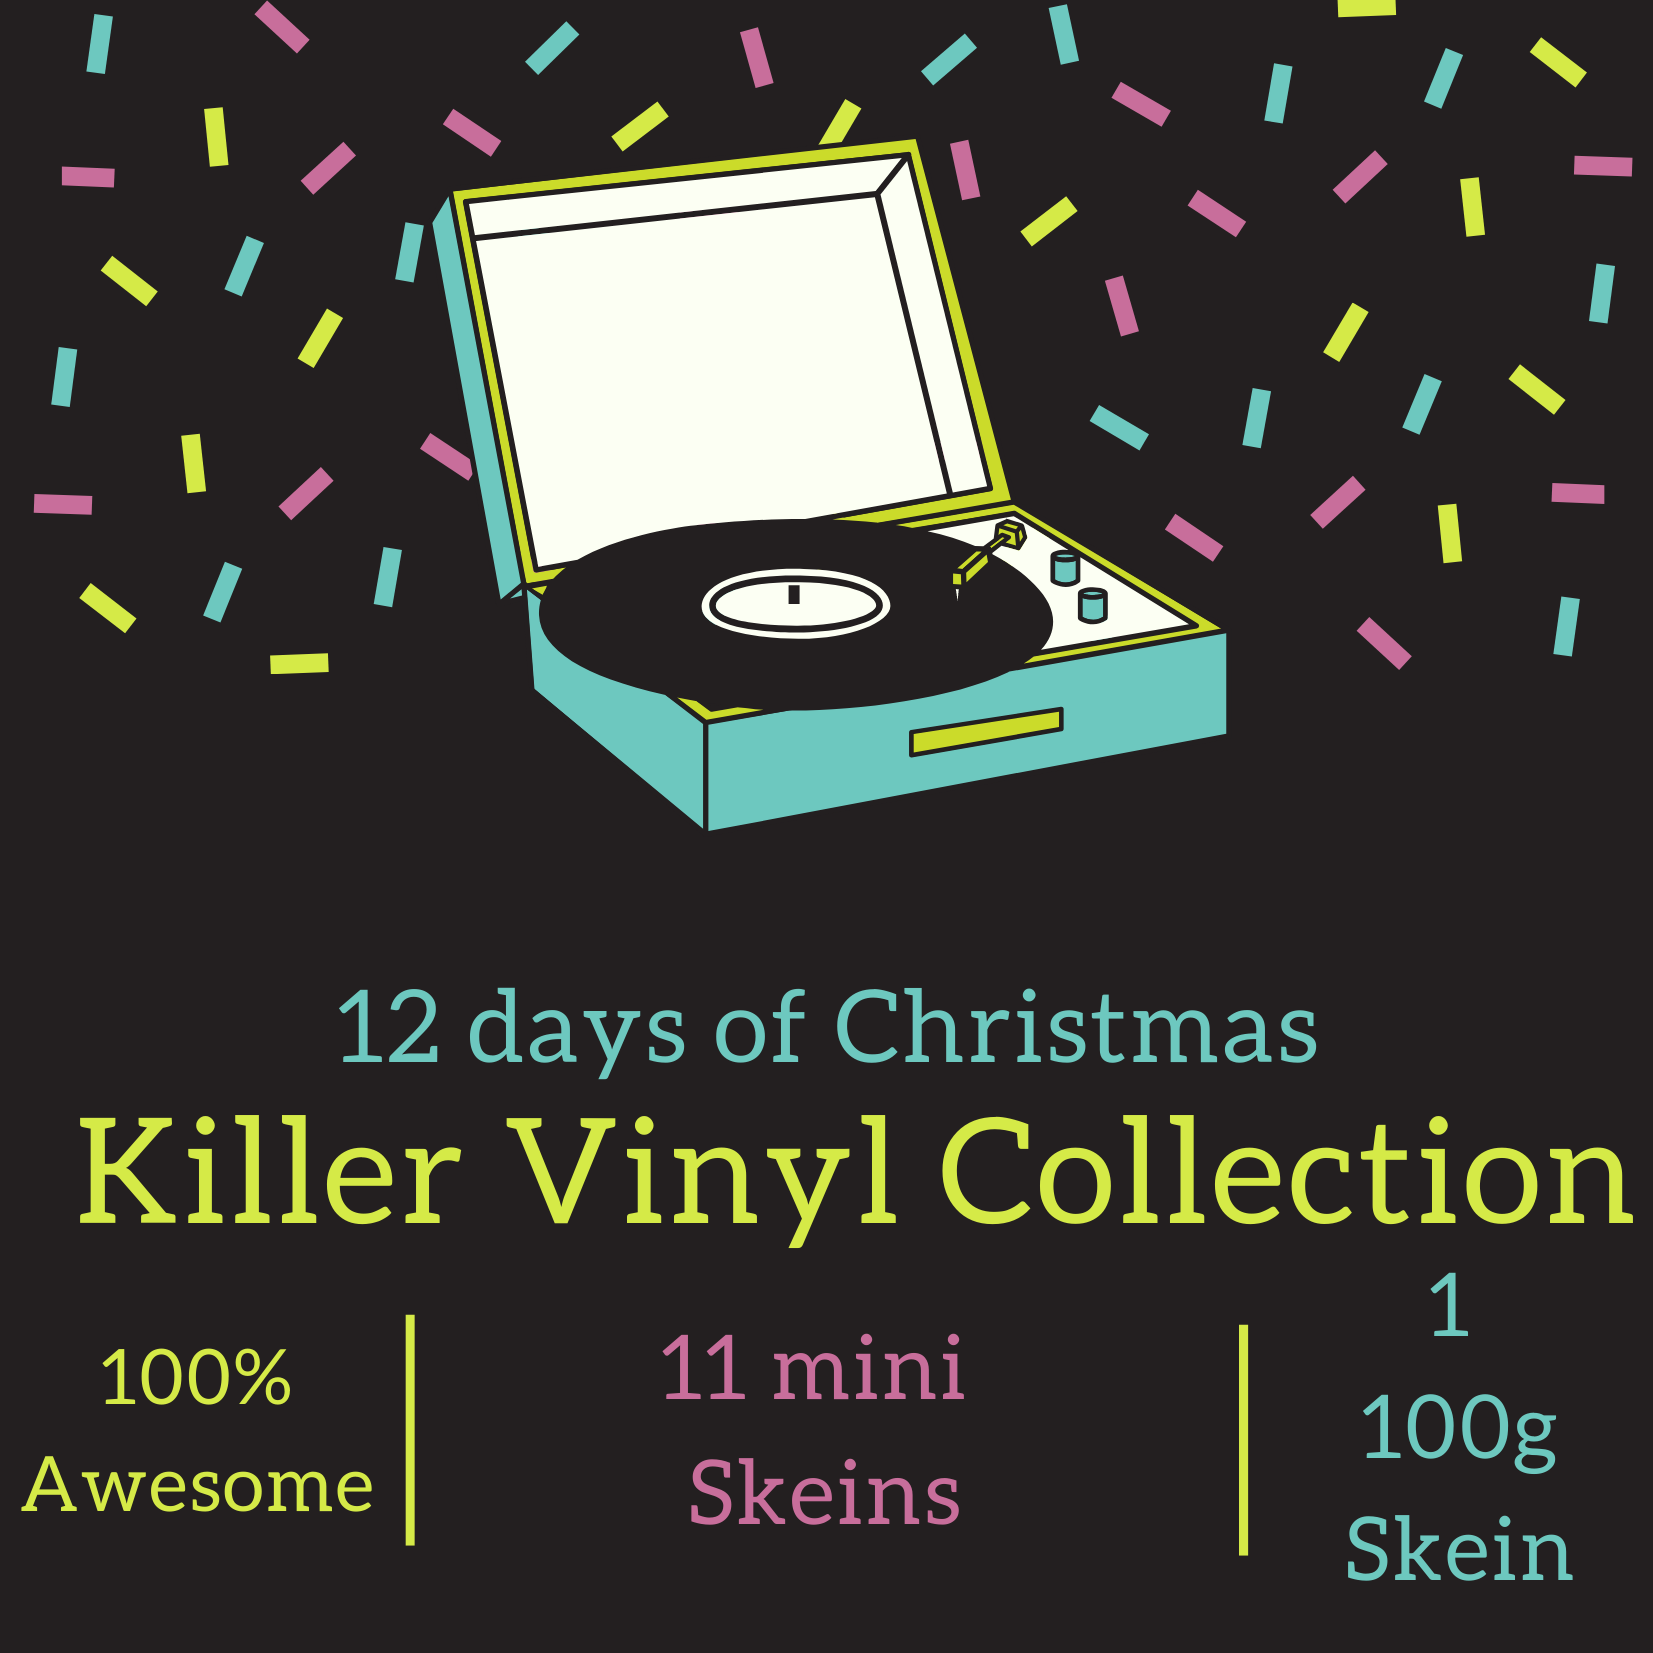 12 Days of Christmas, Killer Vinyl Collection